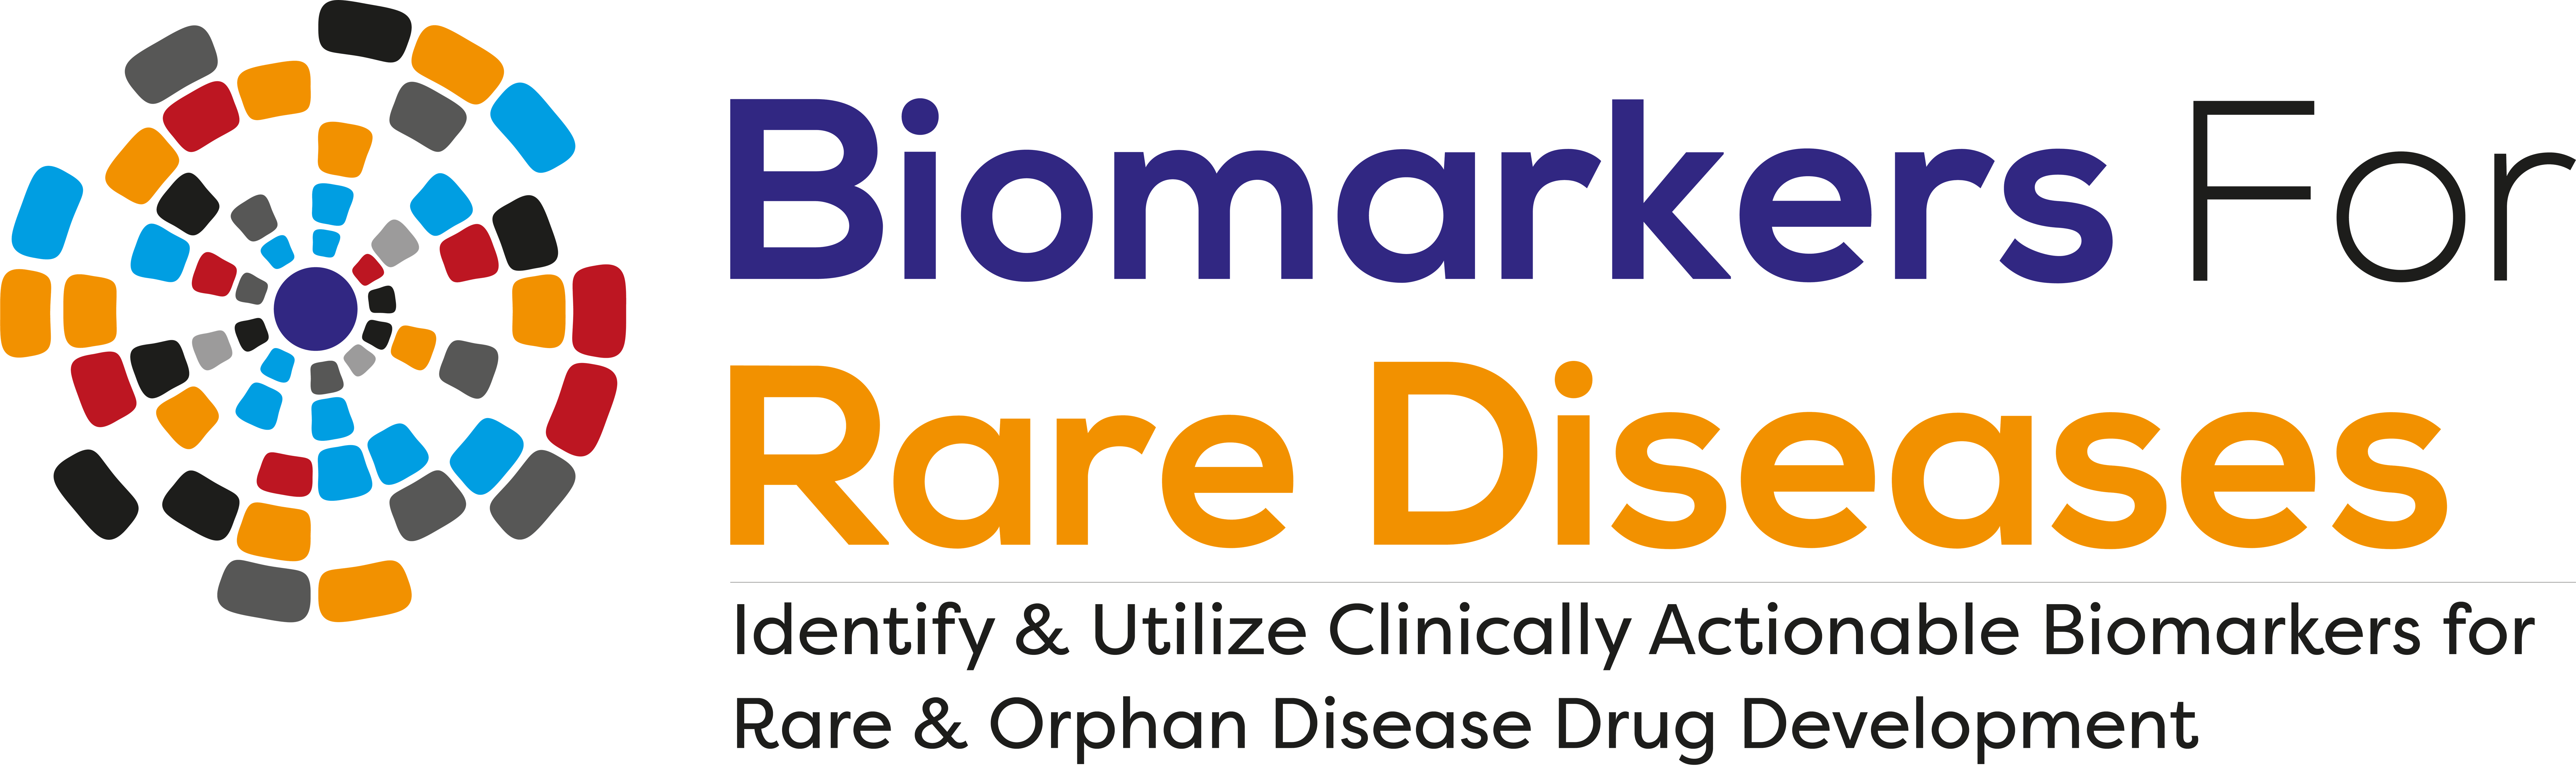 HW210607 Biomarkers for Rare Diseases logo WITH STRAP